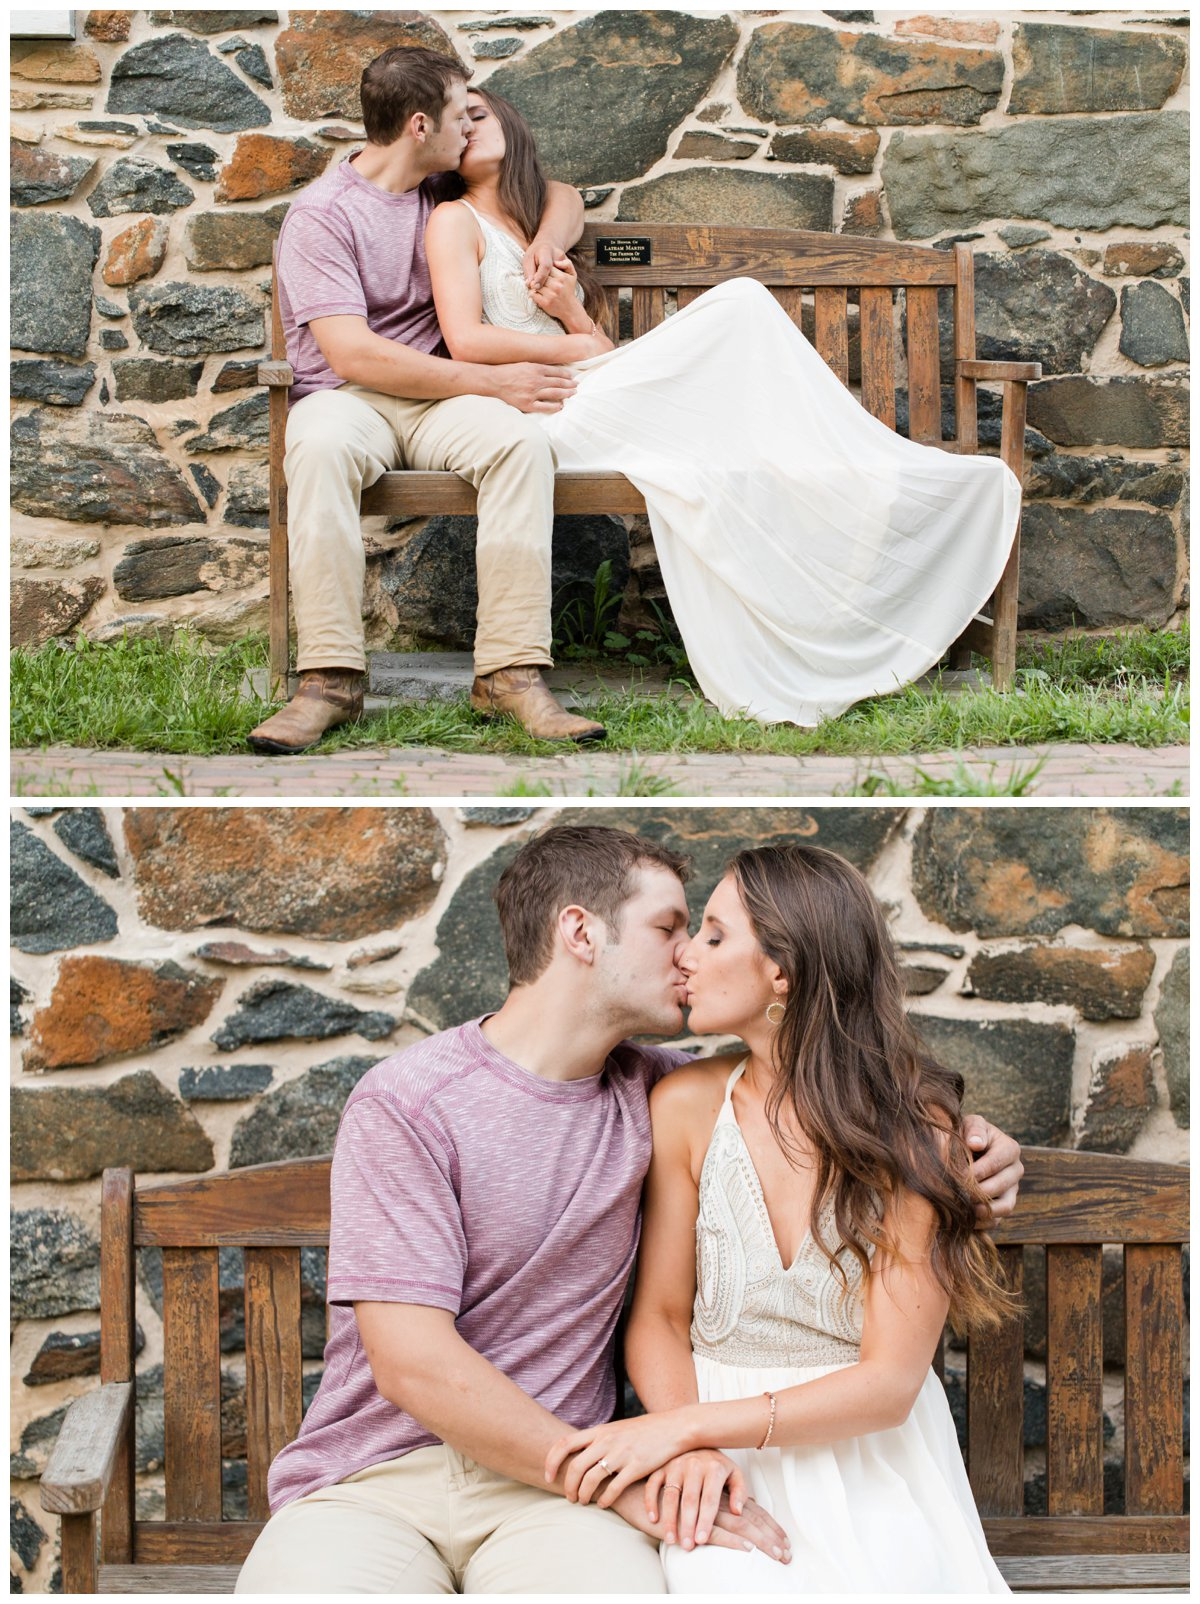 Jerusalem Mills Bohemian Engagement Photography on a bench